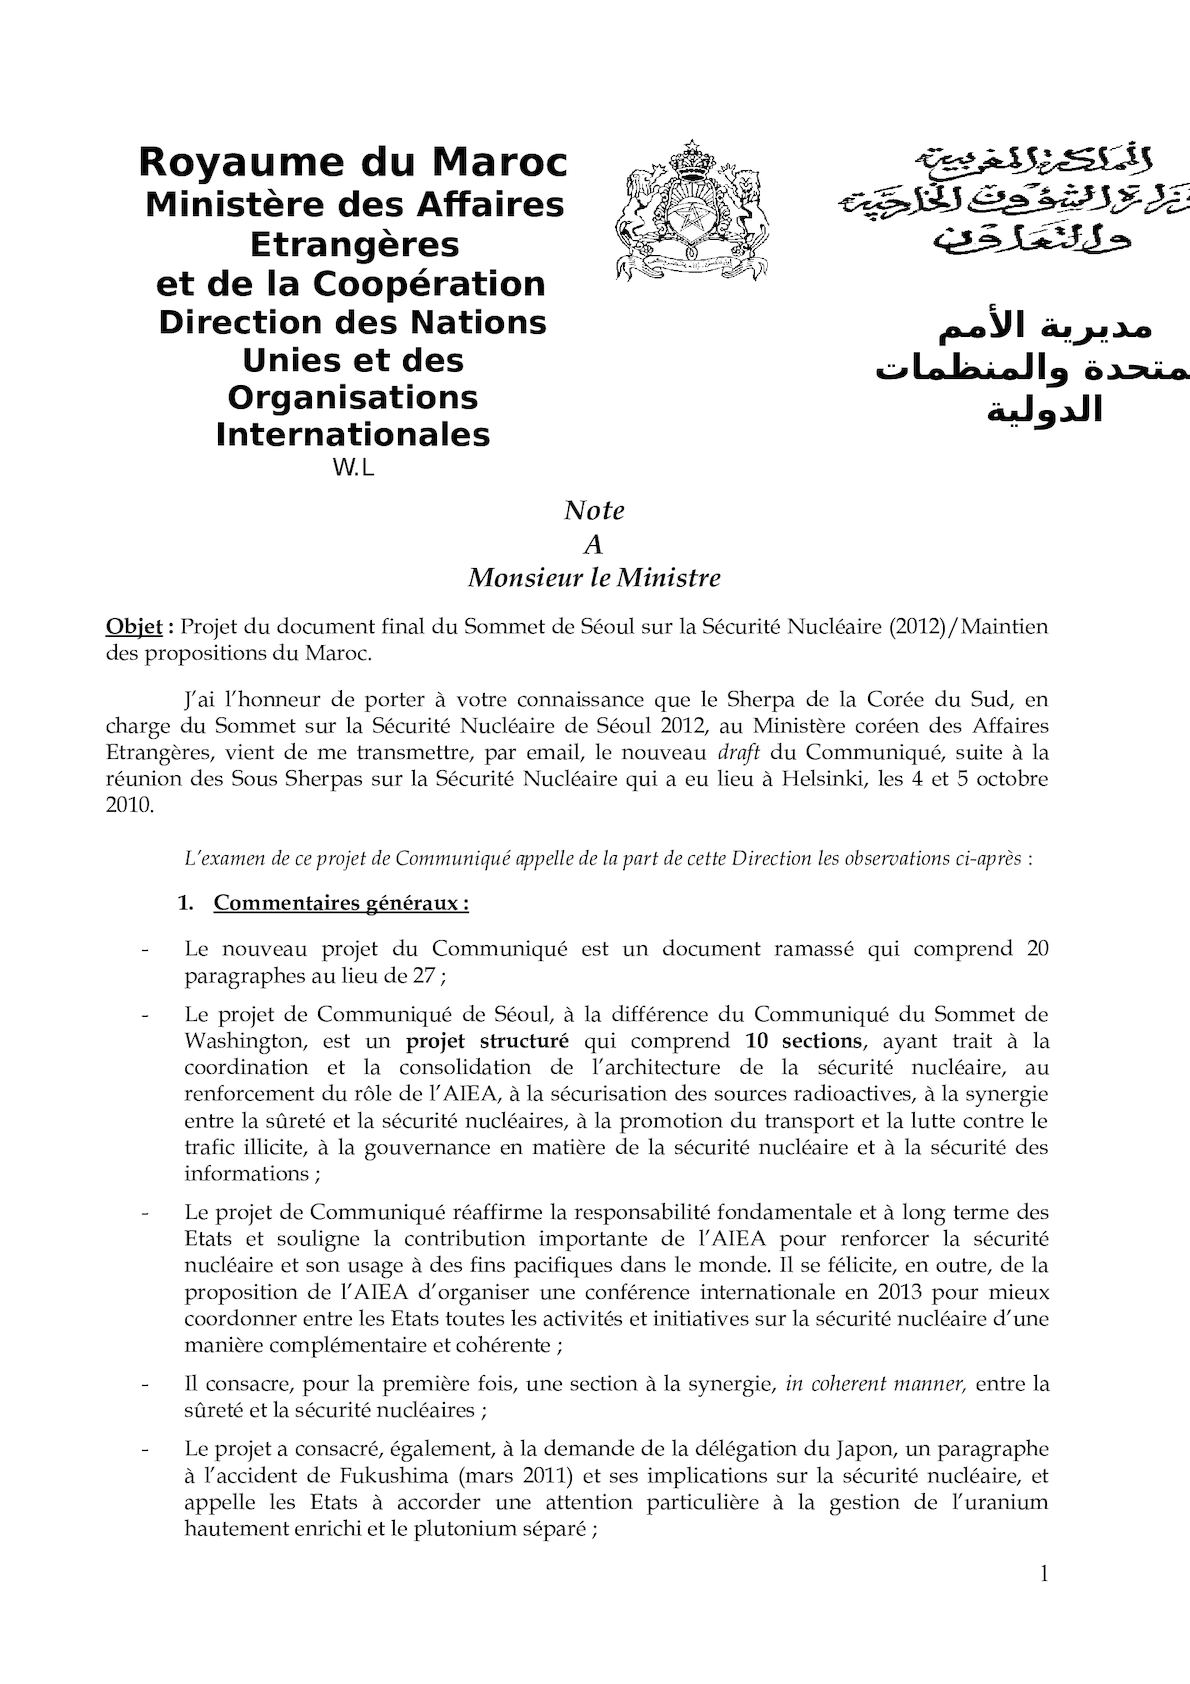 Note M. Le Ministre - Final Draft Of Seoul Communiqué (14 Nov 2011).